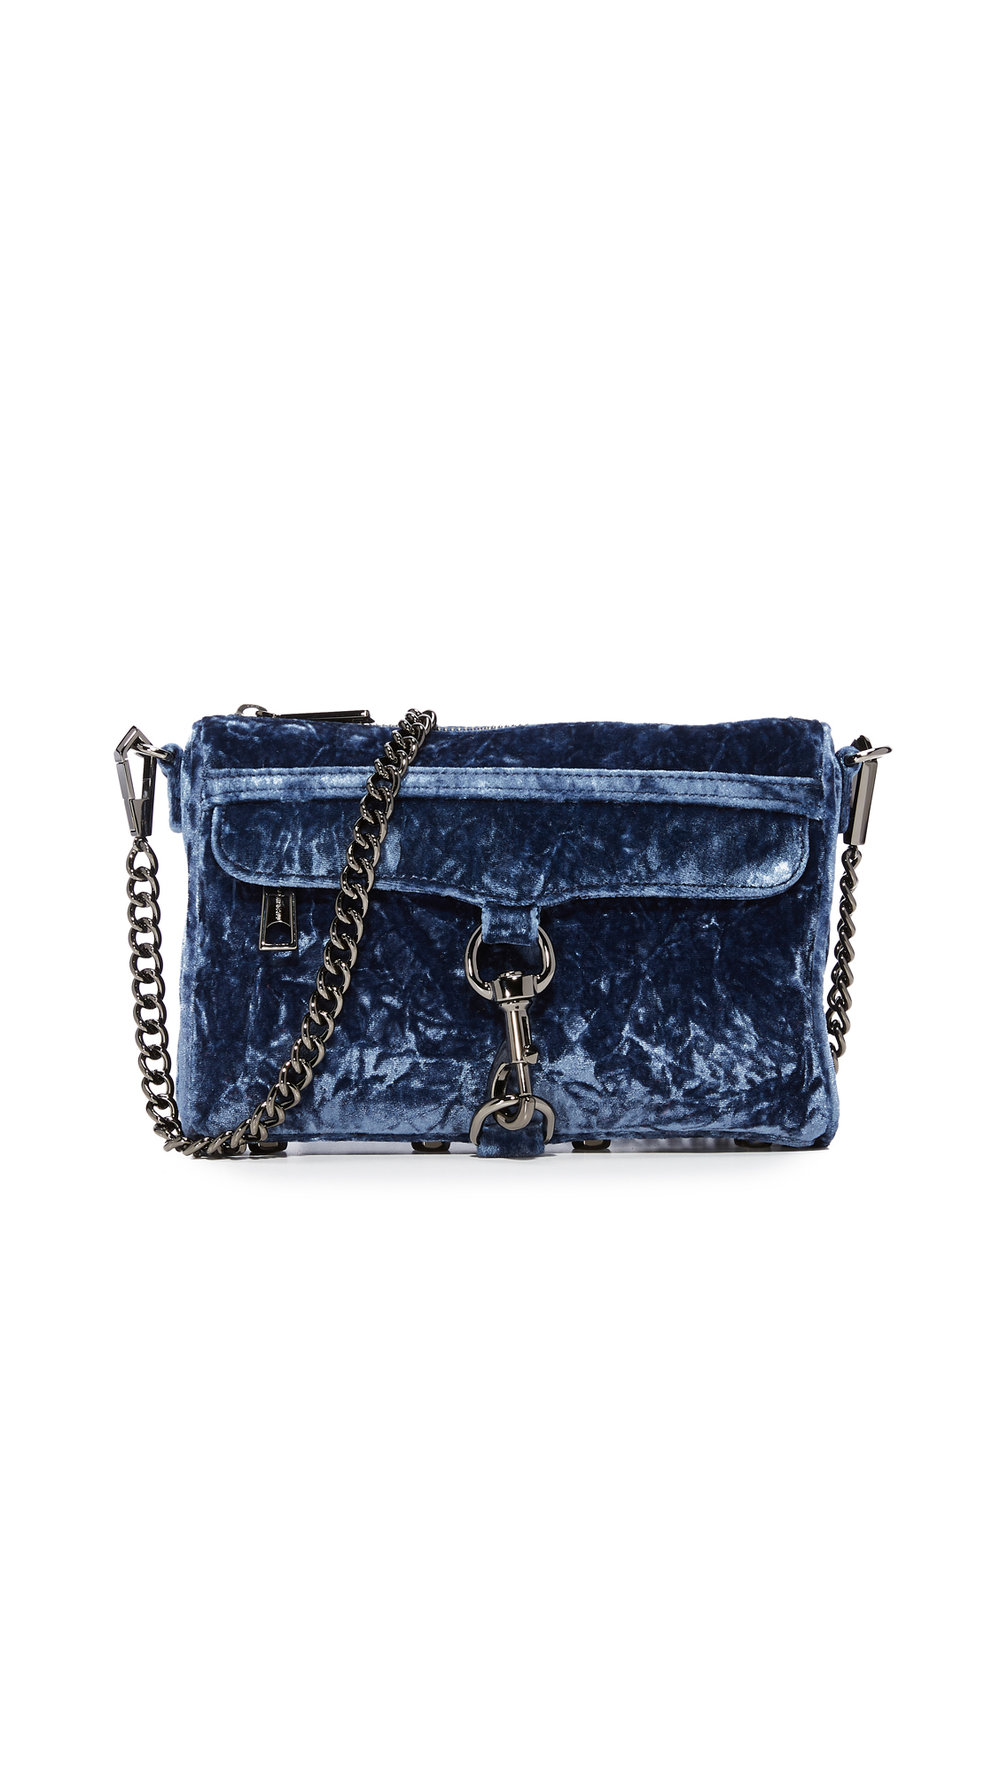 REBECCA MINKOFF VELVET MINI MAC BAG   SHOP HERE